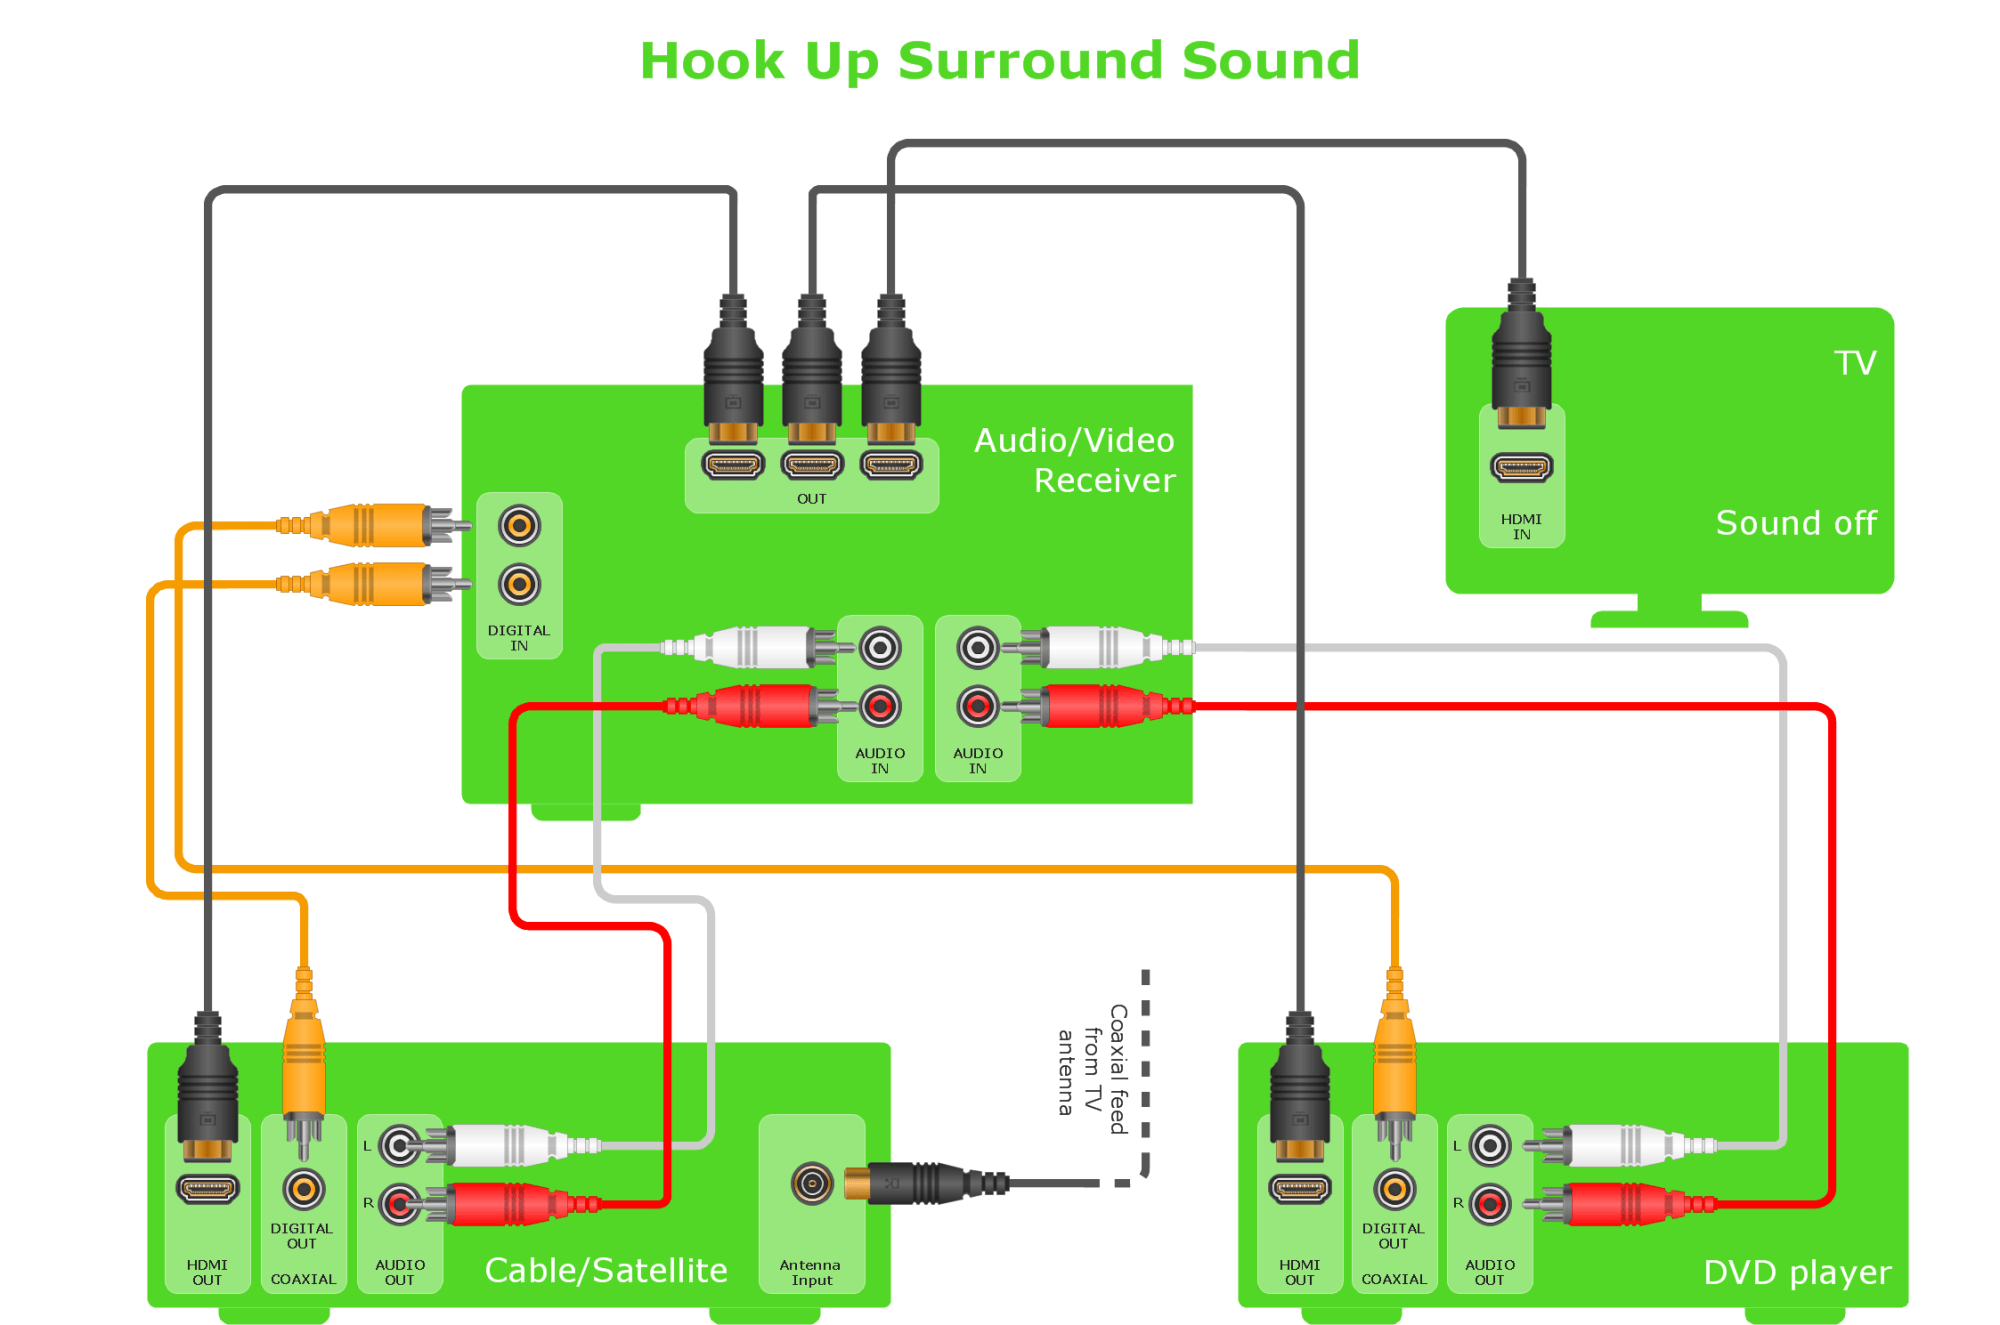 hight resolution of audio and video connectors solution allows users to make own hookup home av connections diagram